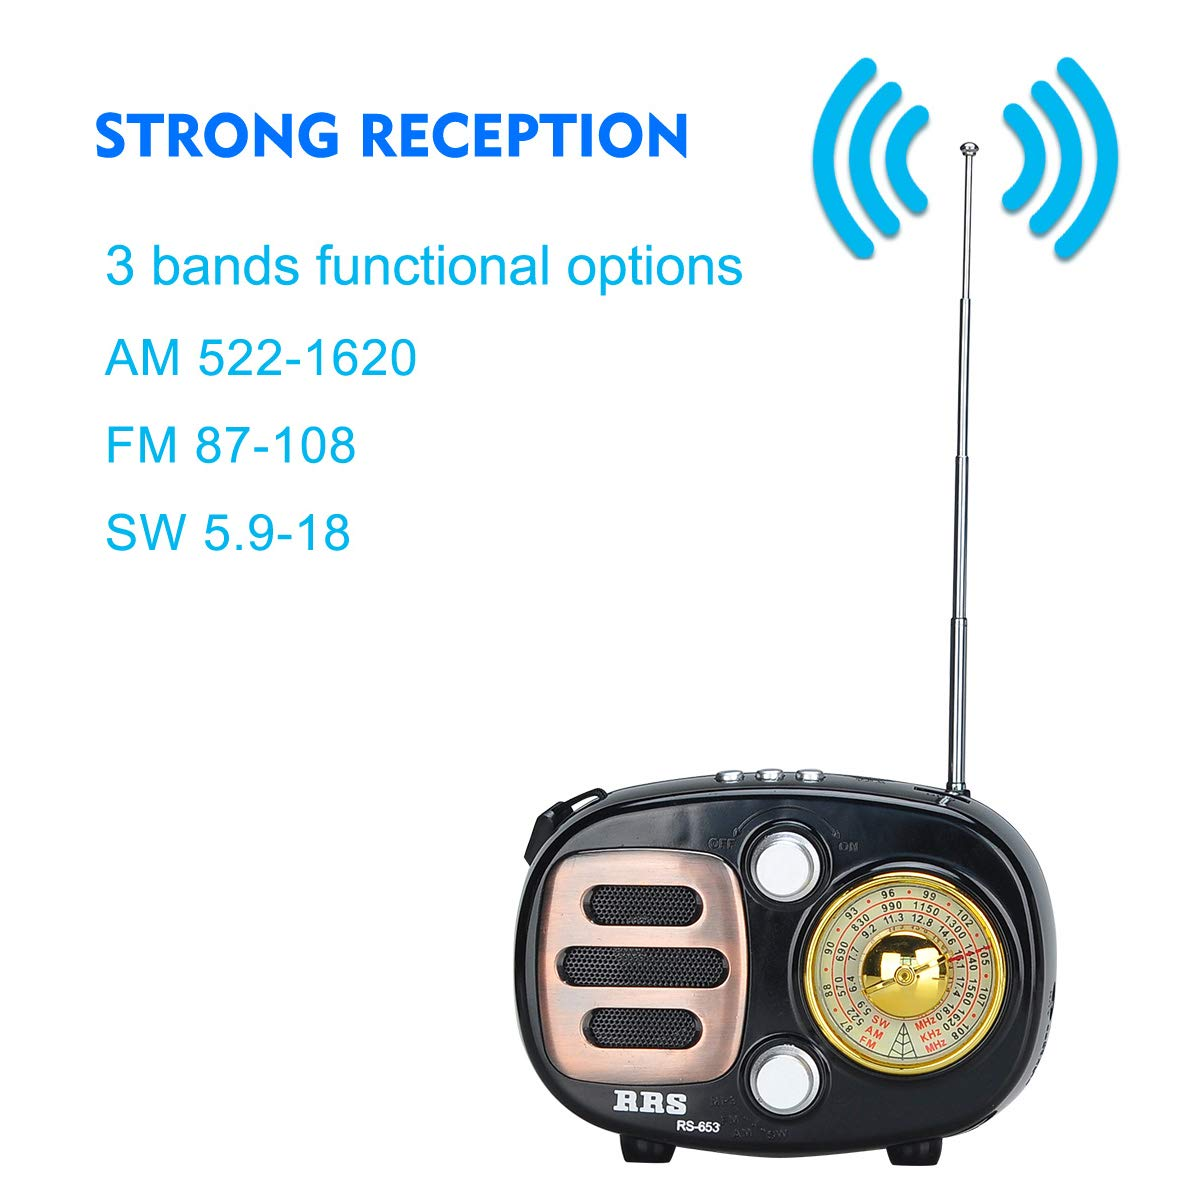 Portable FM//AM//SW//MP3 Bluetooth Radio High Reception /& Clear Loudspeaker for Exercising Walking Grey Covvy USB Chargeable Build-in Stereo Speaker with Earphone /& TF Jack Travelling /& Camping